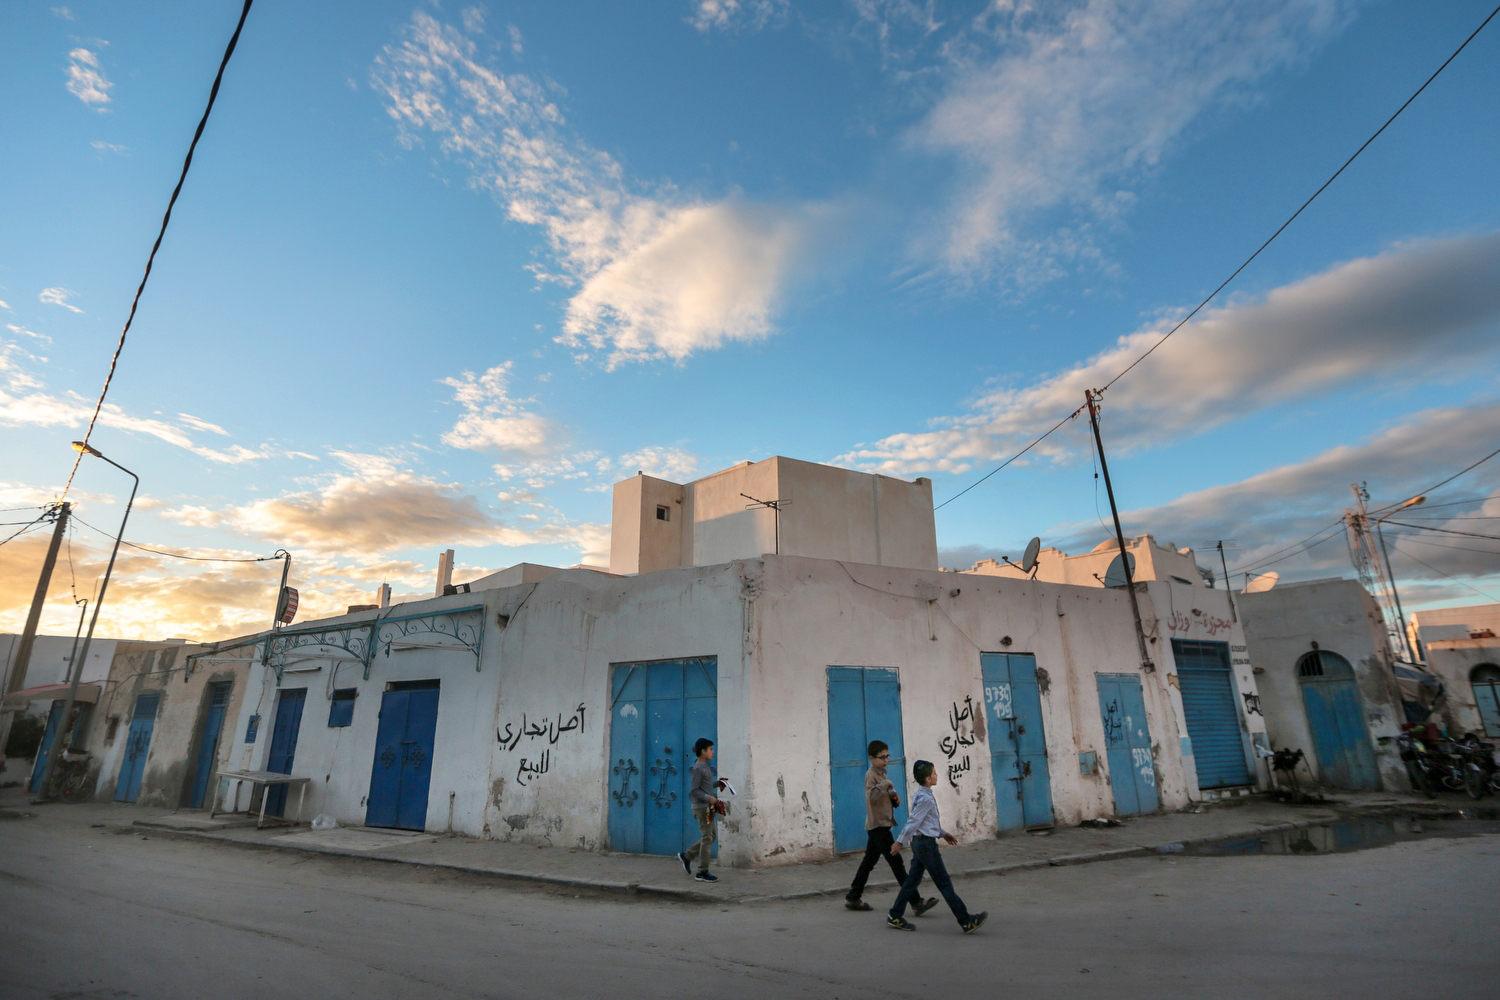 Boys walk past closed shops on the beginning of Shabbath, after sunset, at Hara Kbira, the main Jewish neighborhood in the Island of Djerba, southern Tunisia, Oct. 30, 2015.